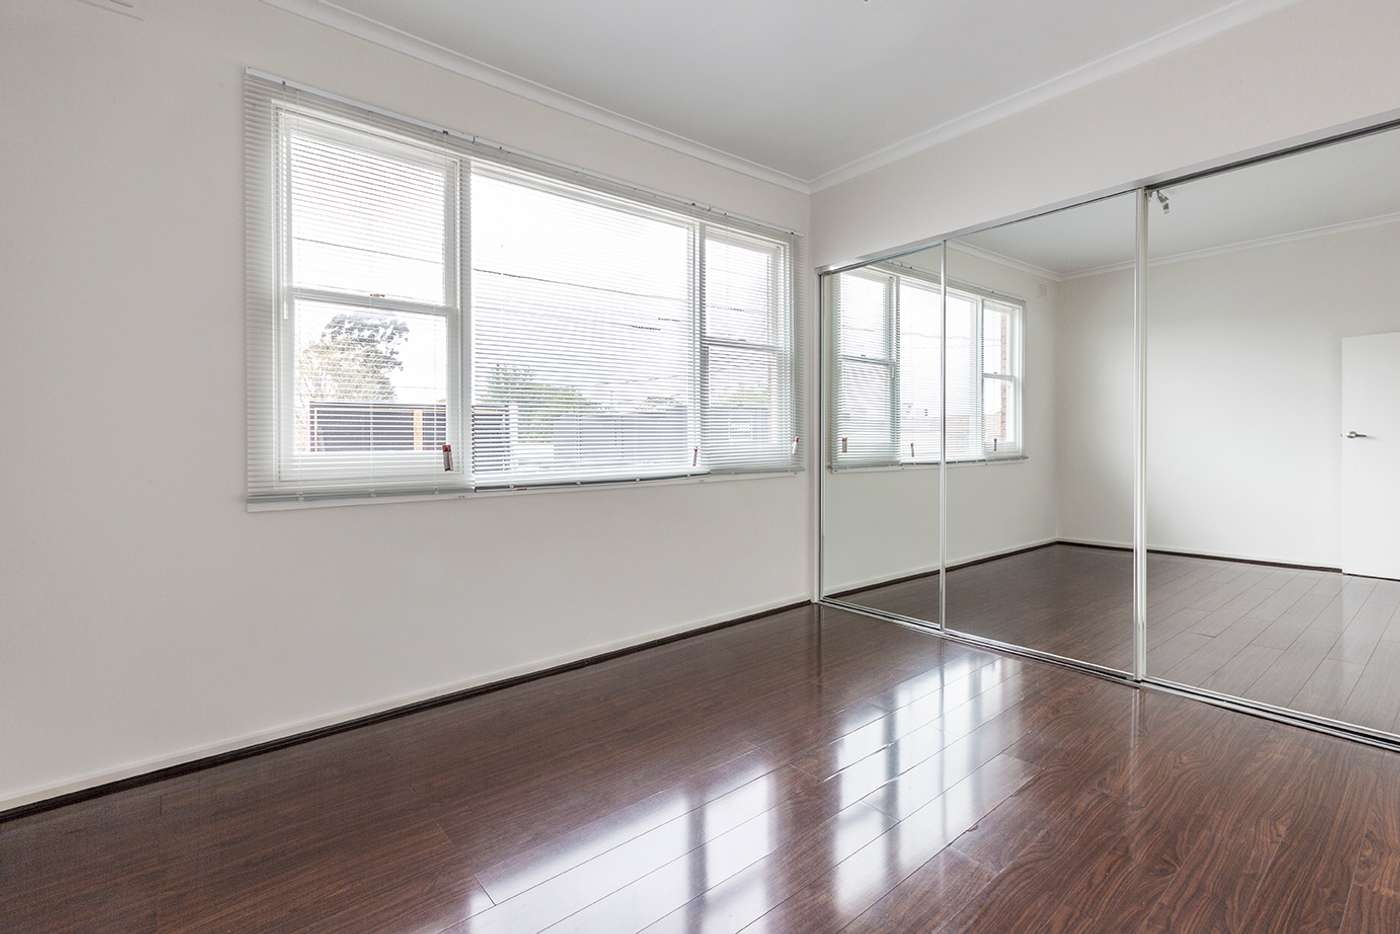 Main view of Homely unit listing, 1163A Glen Huntly Road, Glen Huntly VIC 3163